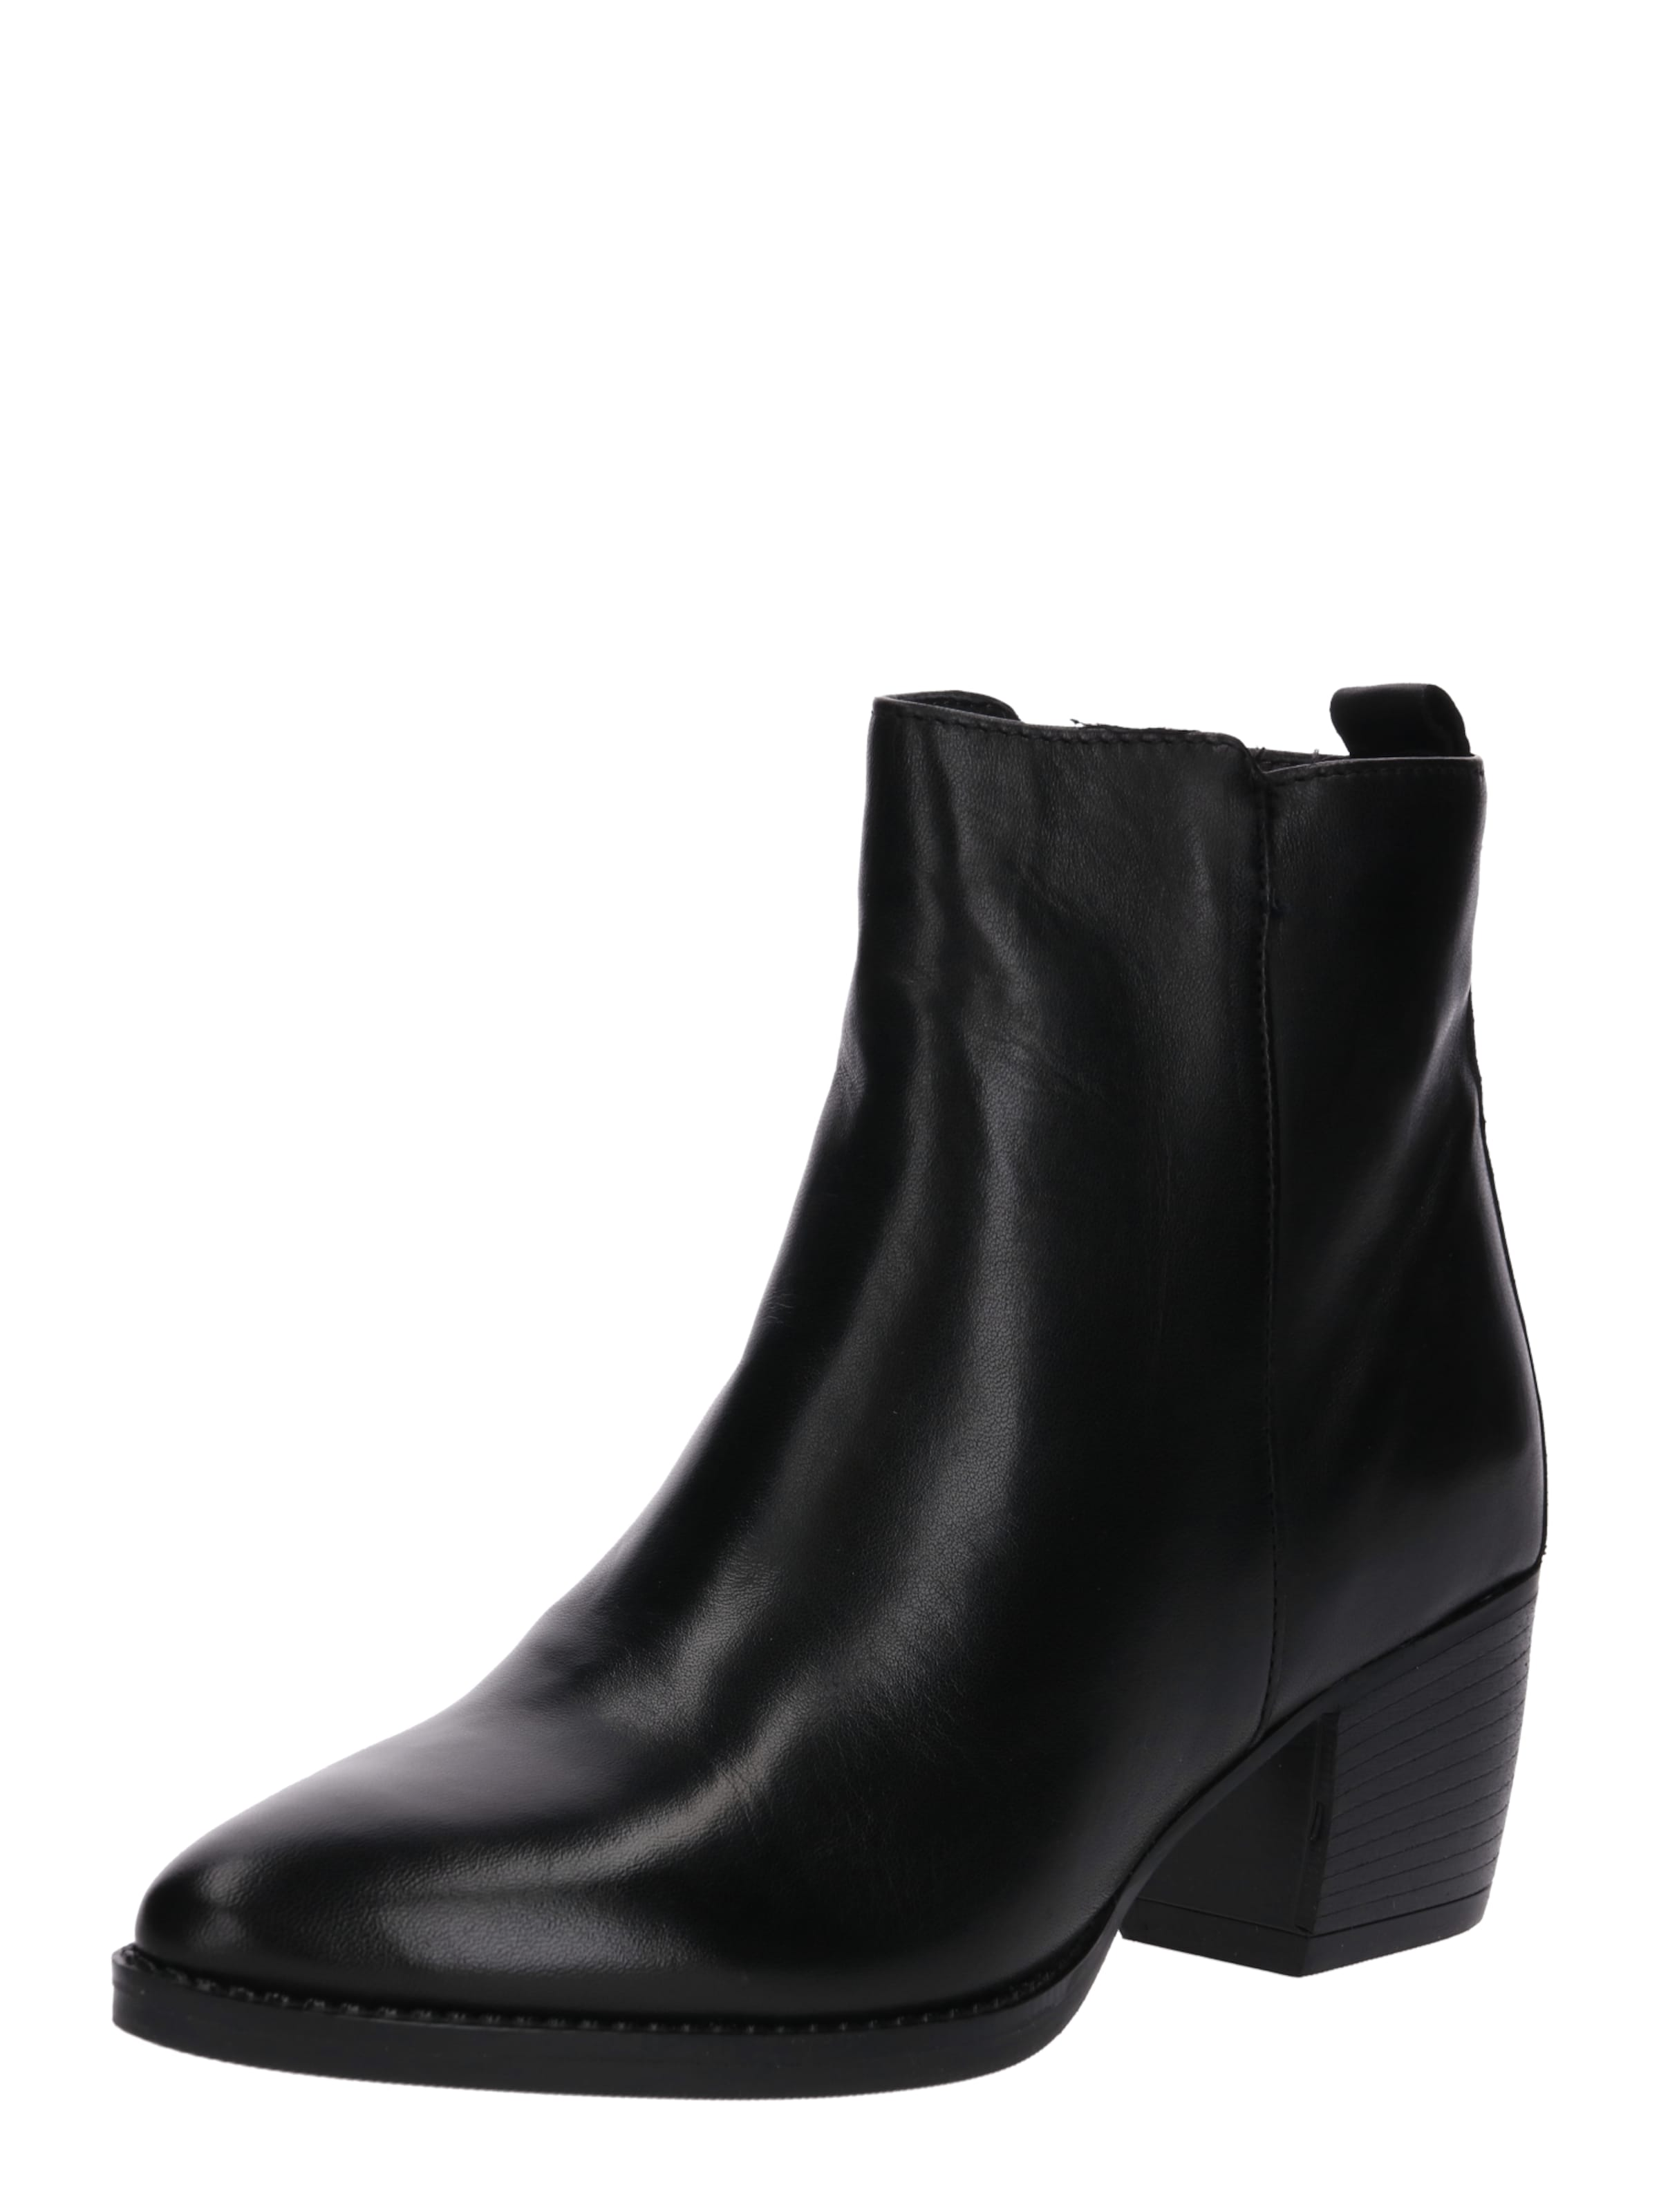 En Noir 'sn6yy Bottines One 8y' Pier clFKJT1